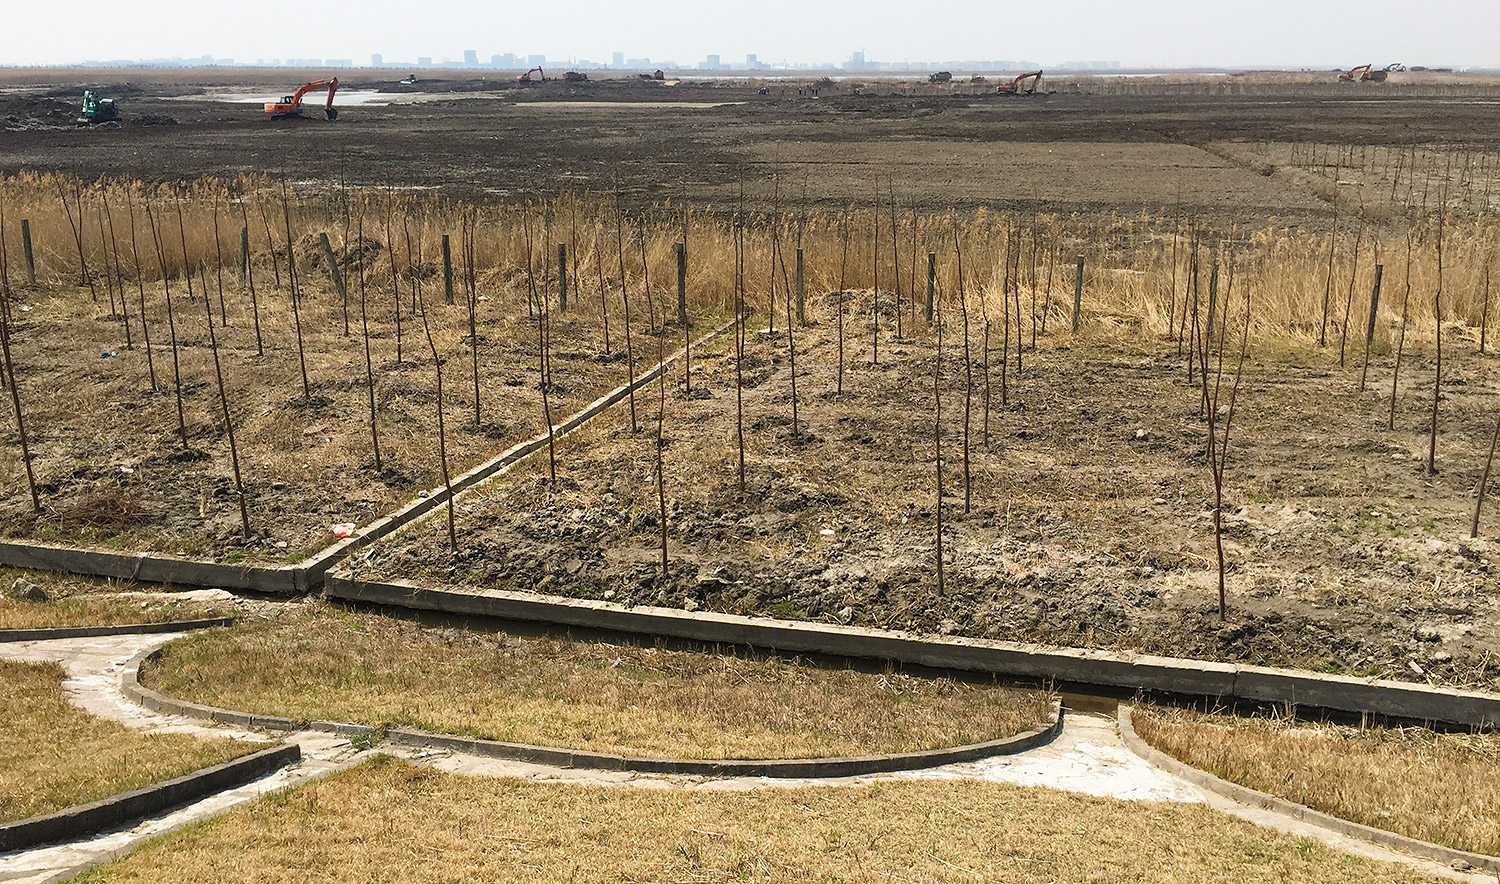 Where Black-faced Spoonbill once foraged, digging machines now crawl, transforming critical reed-bed and marshland habitat into an artificial forest. Looming in the background is the brand-new satellite city, Lingang. Nanhui, Shanghai, 26 March 2015.